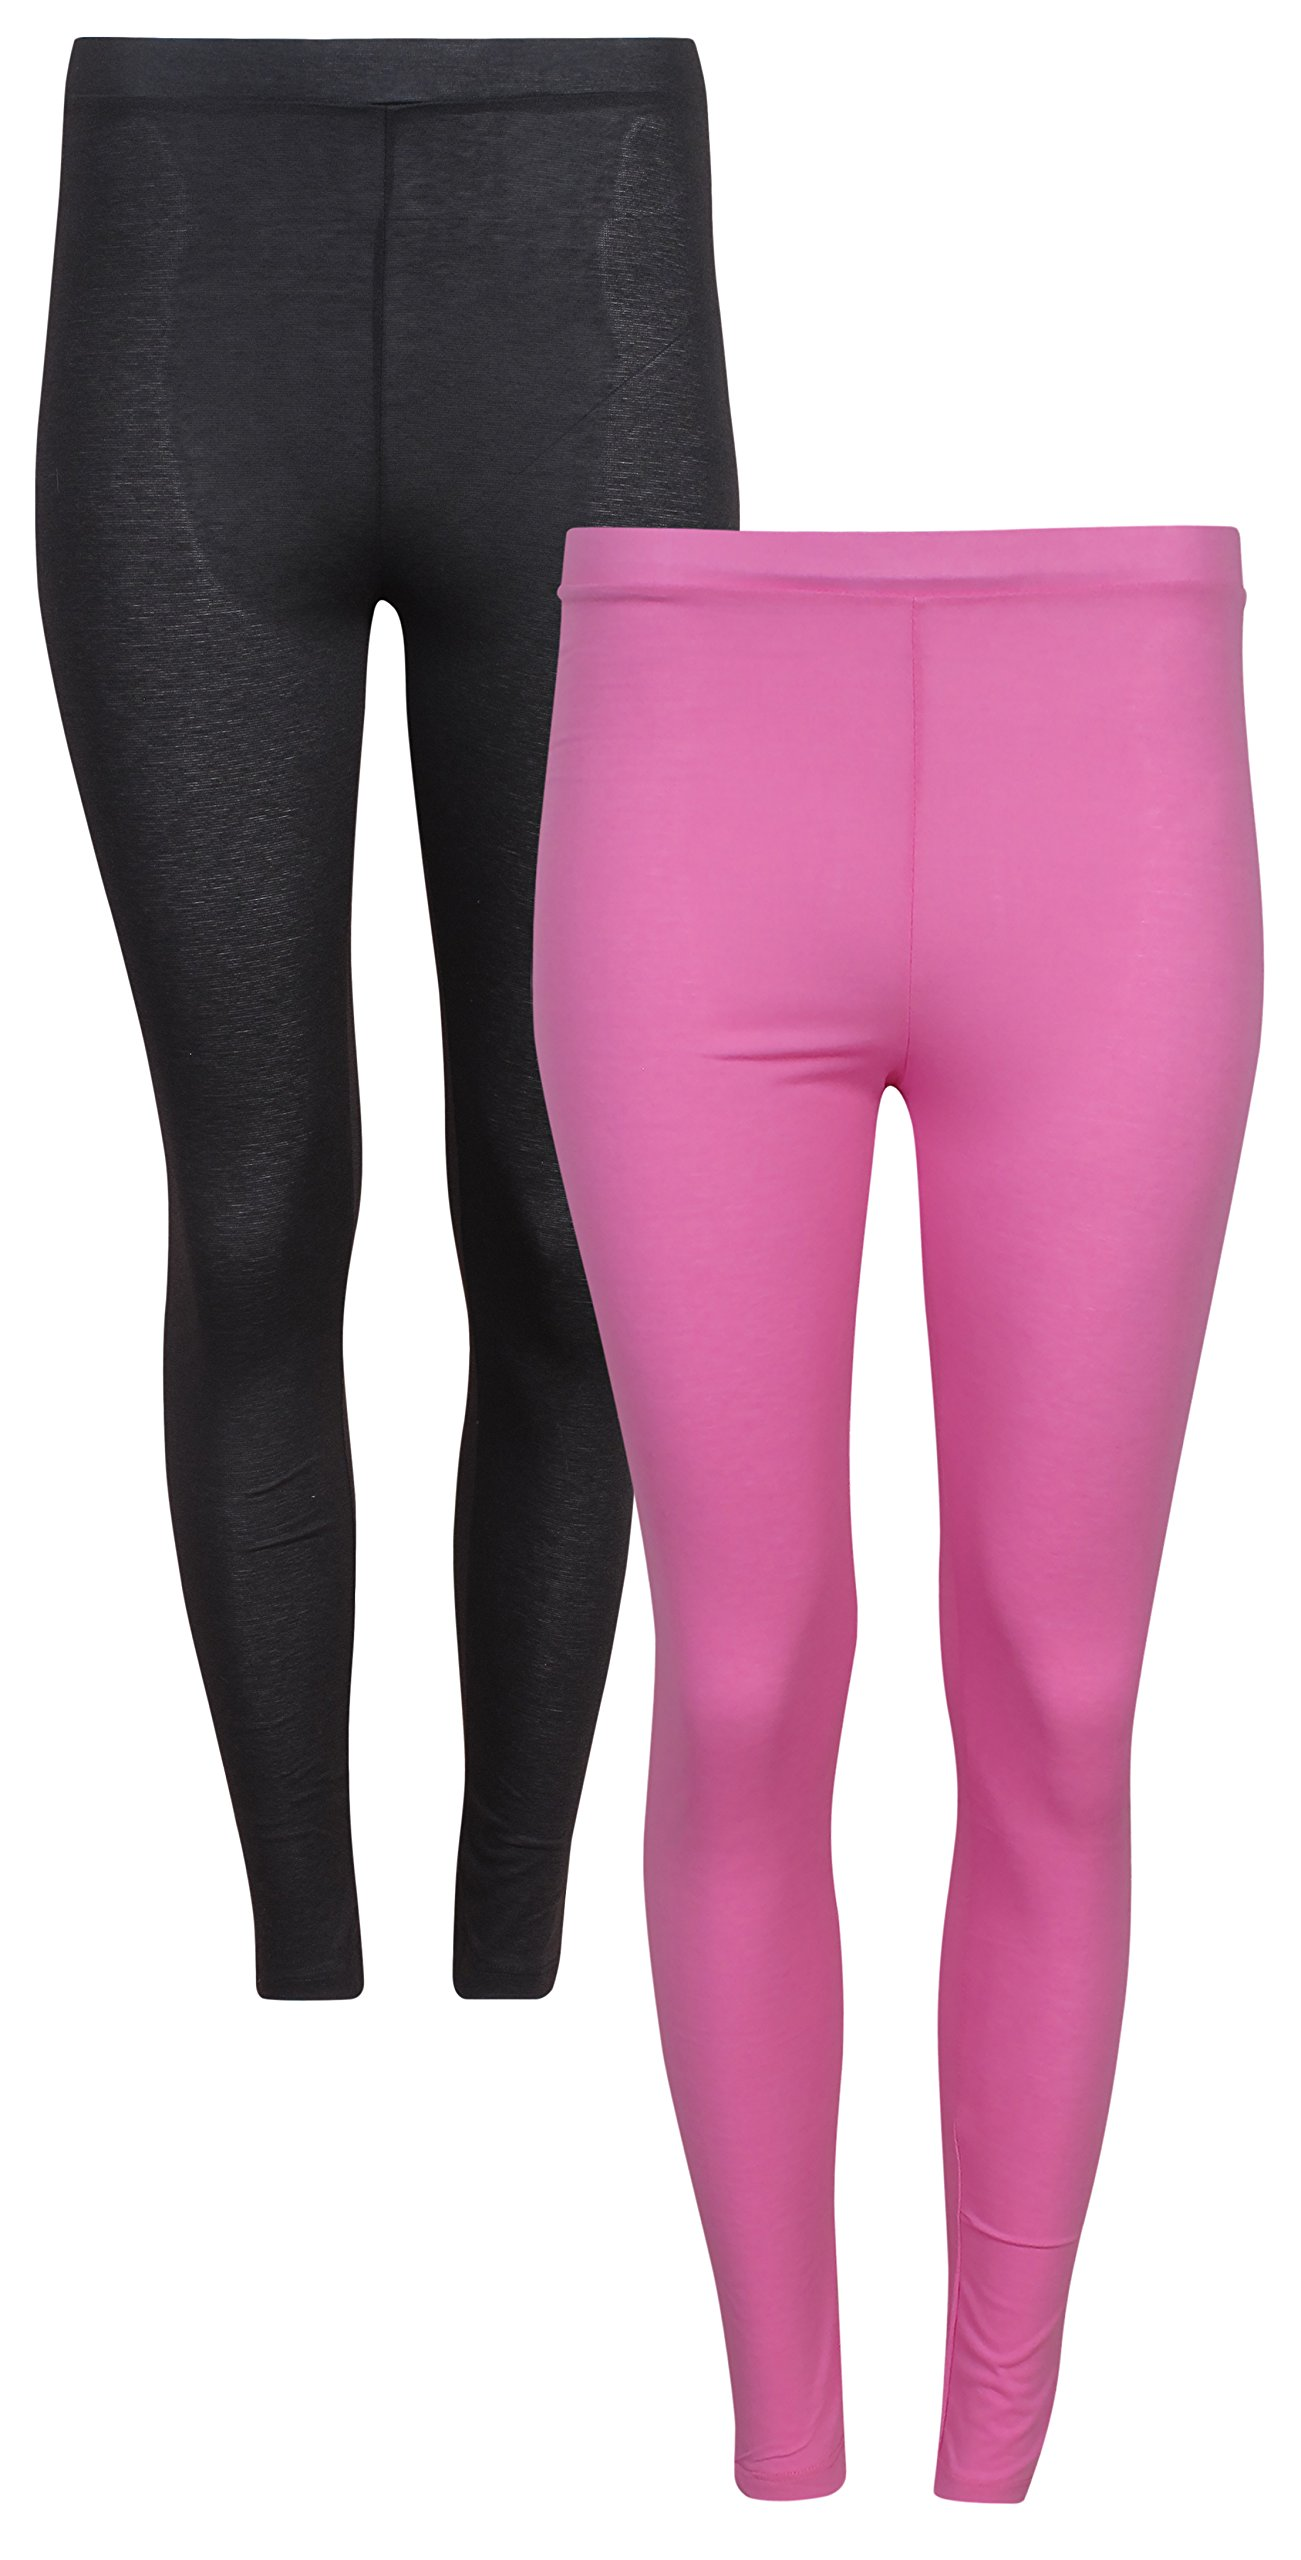 'Tru Fit Women's 2 Pack Performance Thermal Lightweight Base Layer Pant Bottom, Black/Pink, Large'